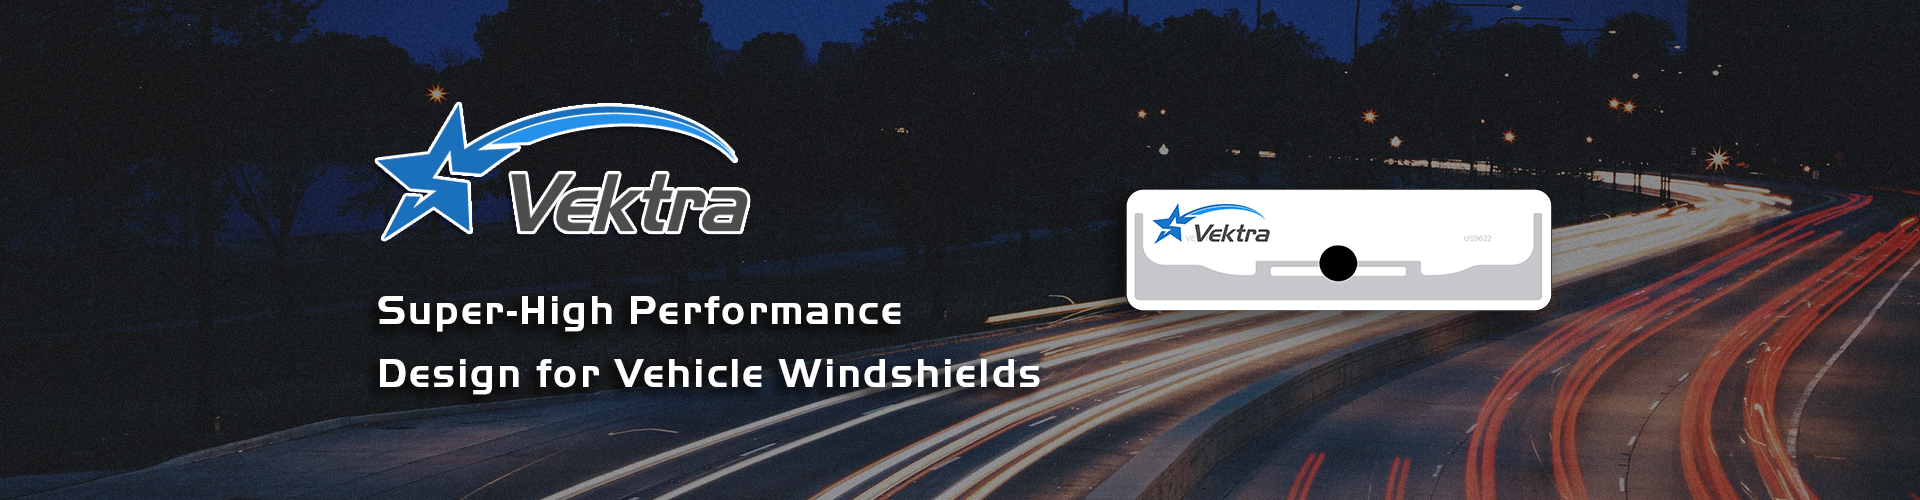 Vektra Super-High Performance Design for Vehicle Windshields